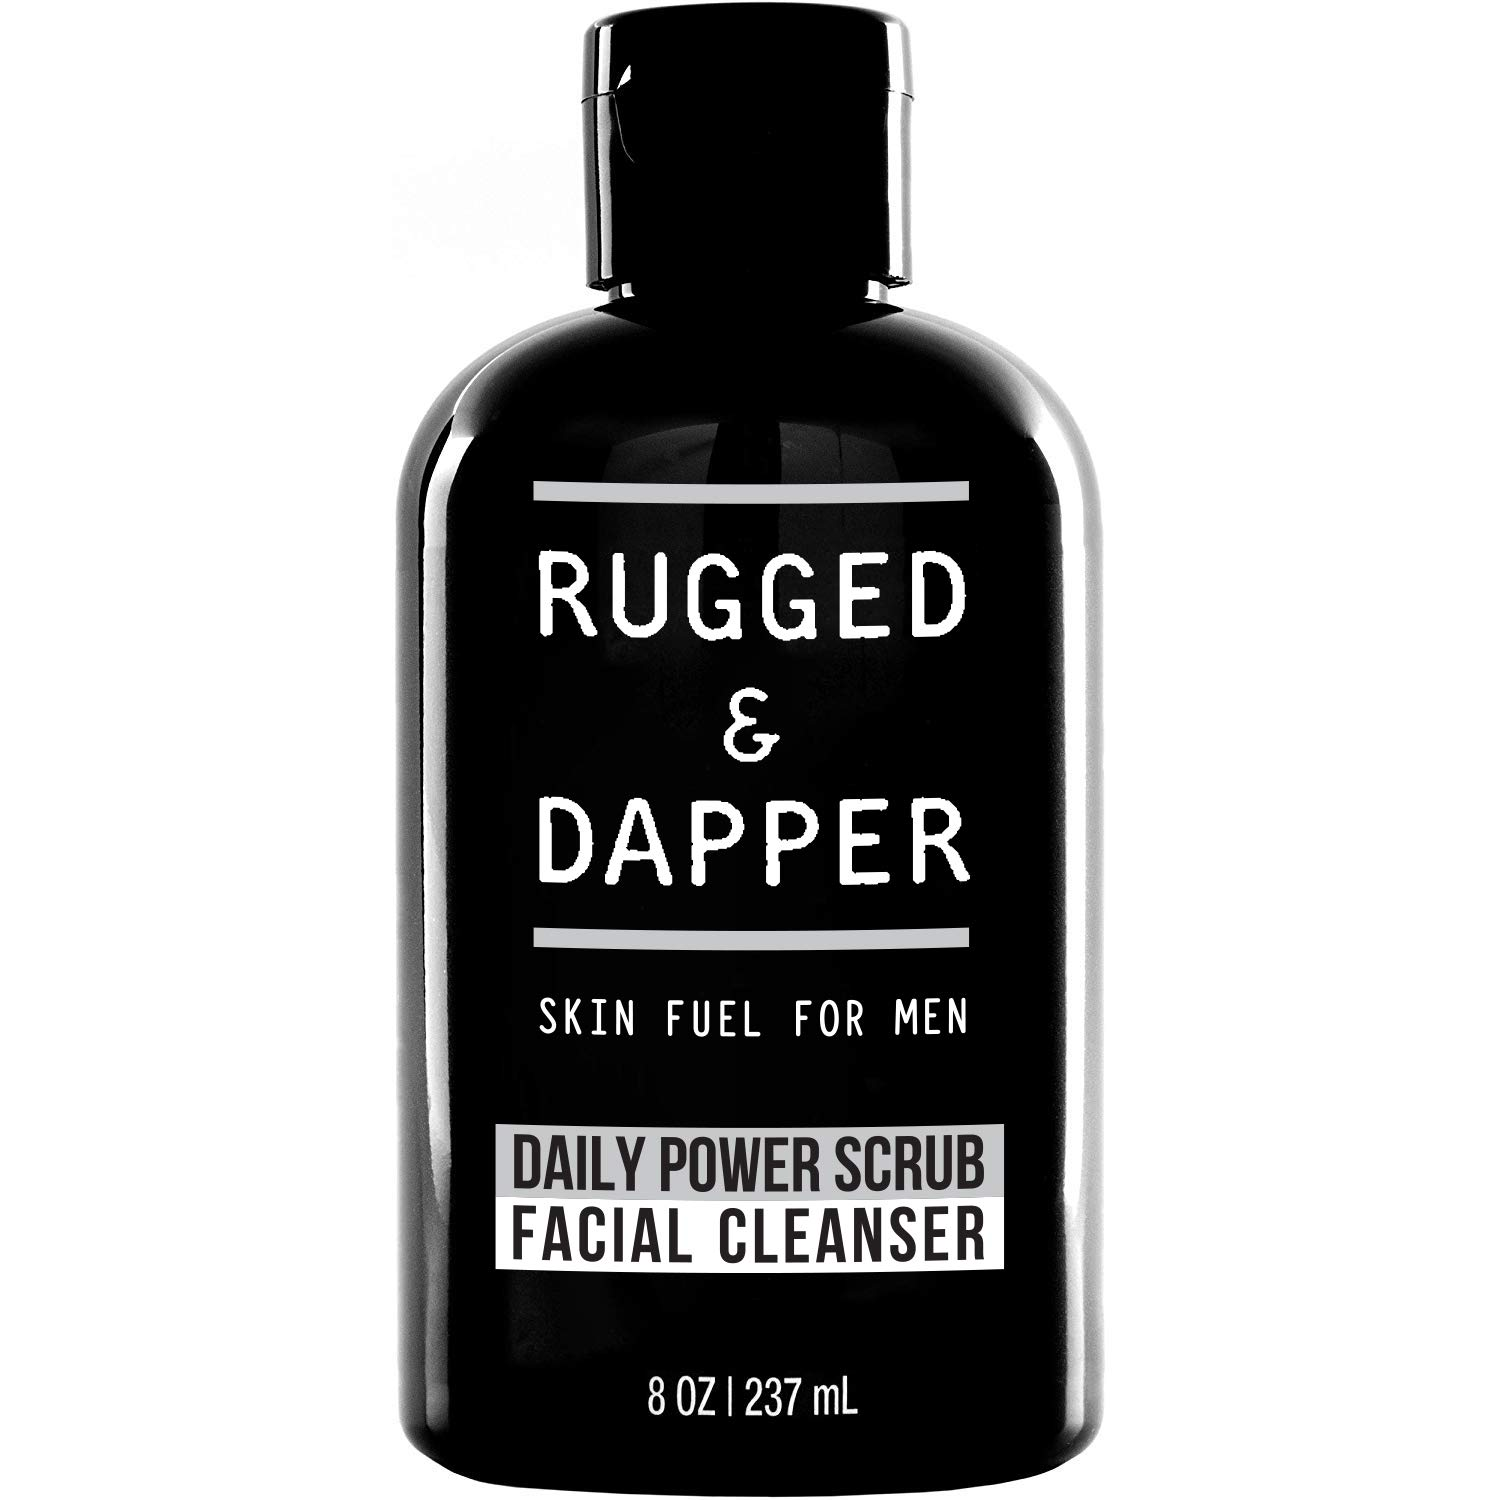 RUGGED & DAPPER skin fuel for men  daily power scrub facial cleanser